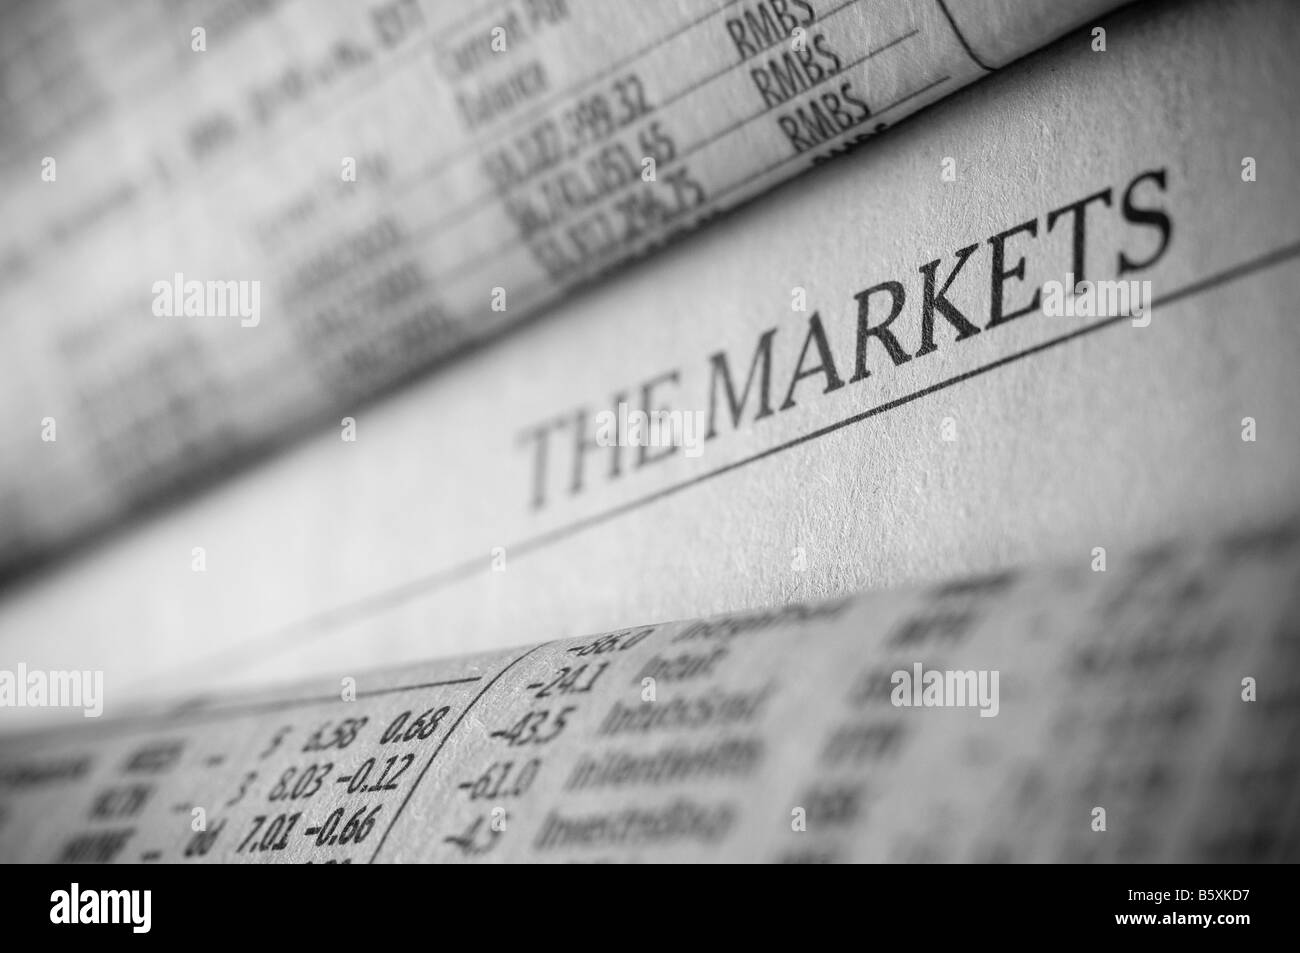 The financial business section of an investment newspaper. - Stock Image